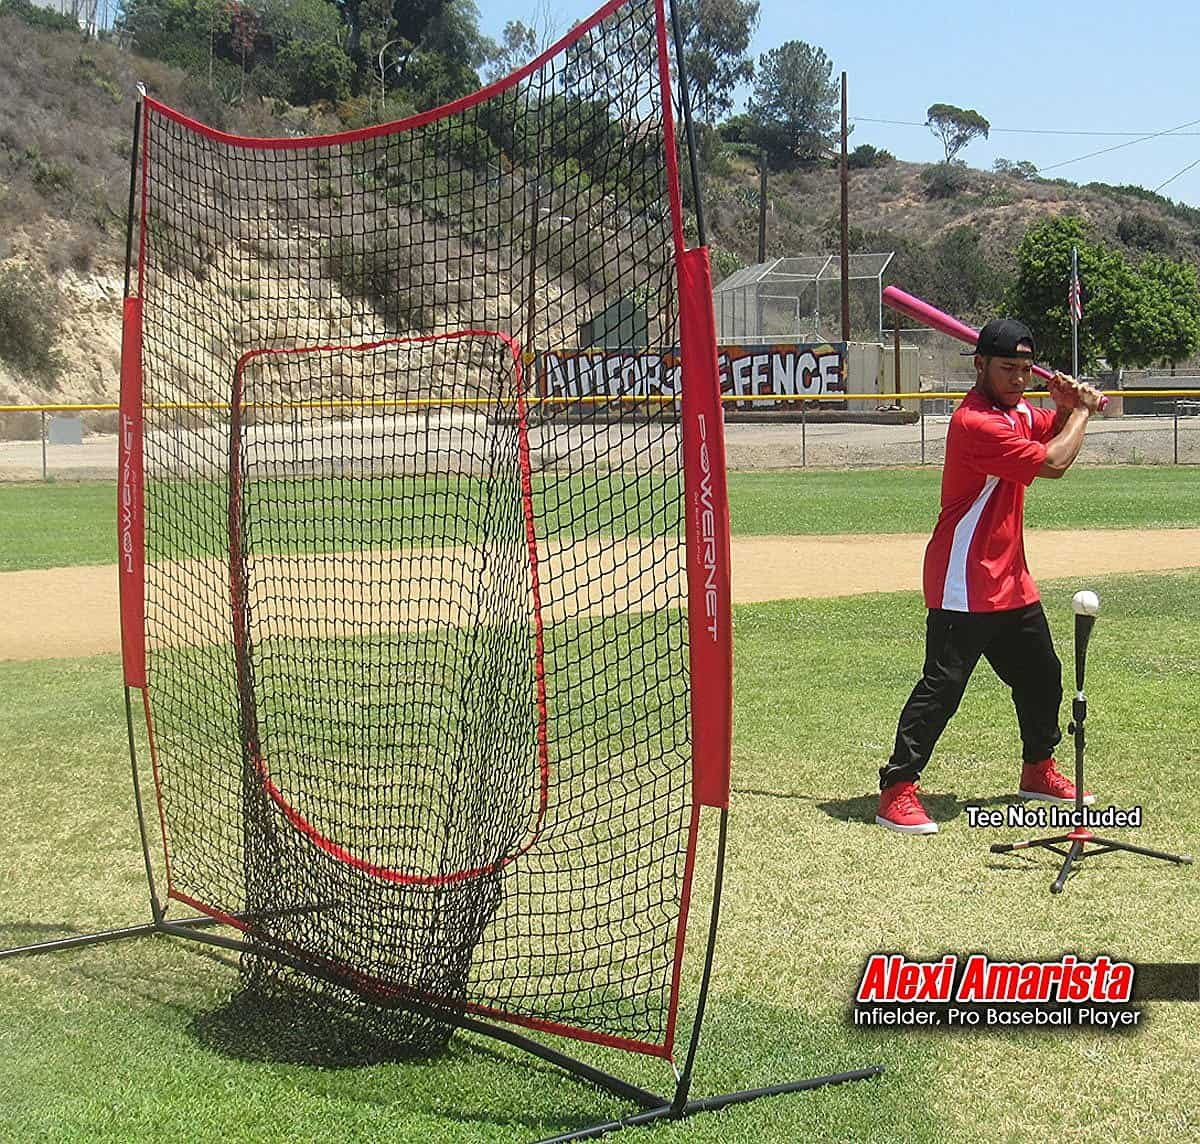 Best Home Batting Cage - The Backyard Site